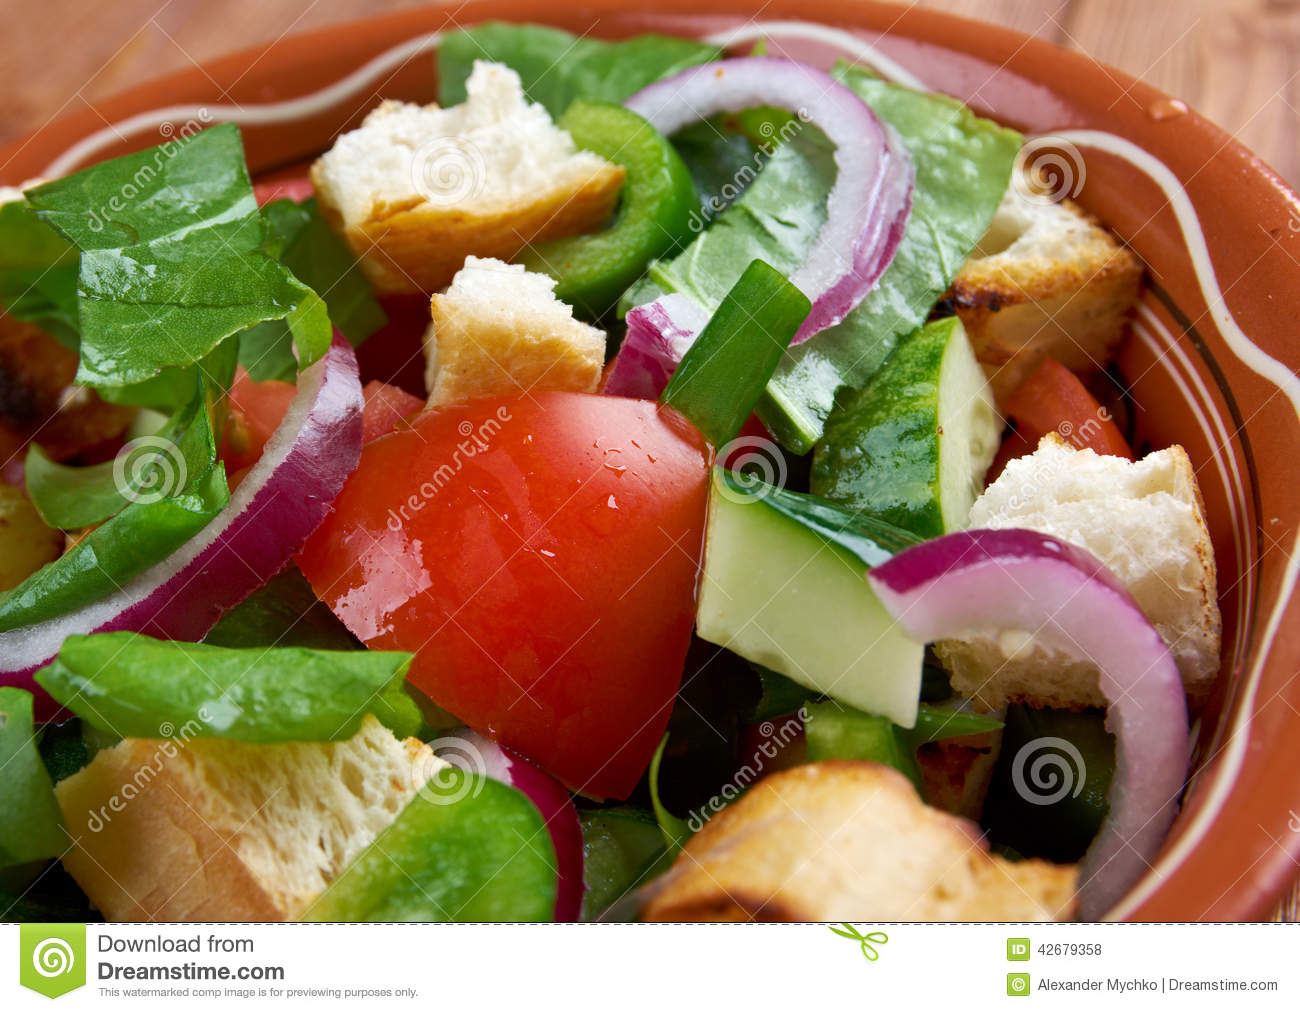 Panzanella or panmolle is a Tuscan salad of bread and tomatoes.